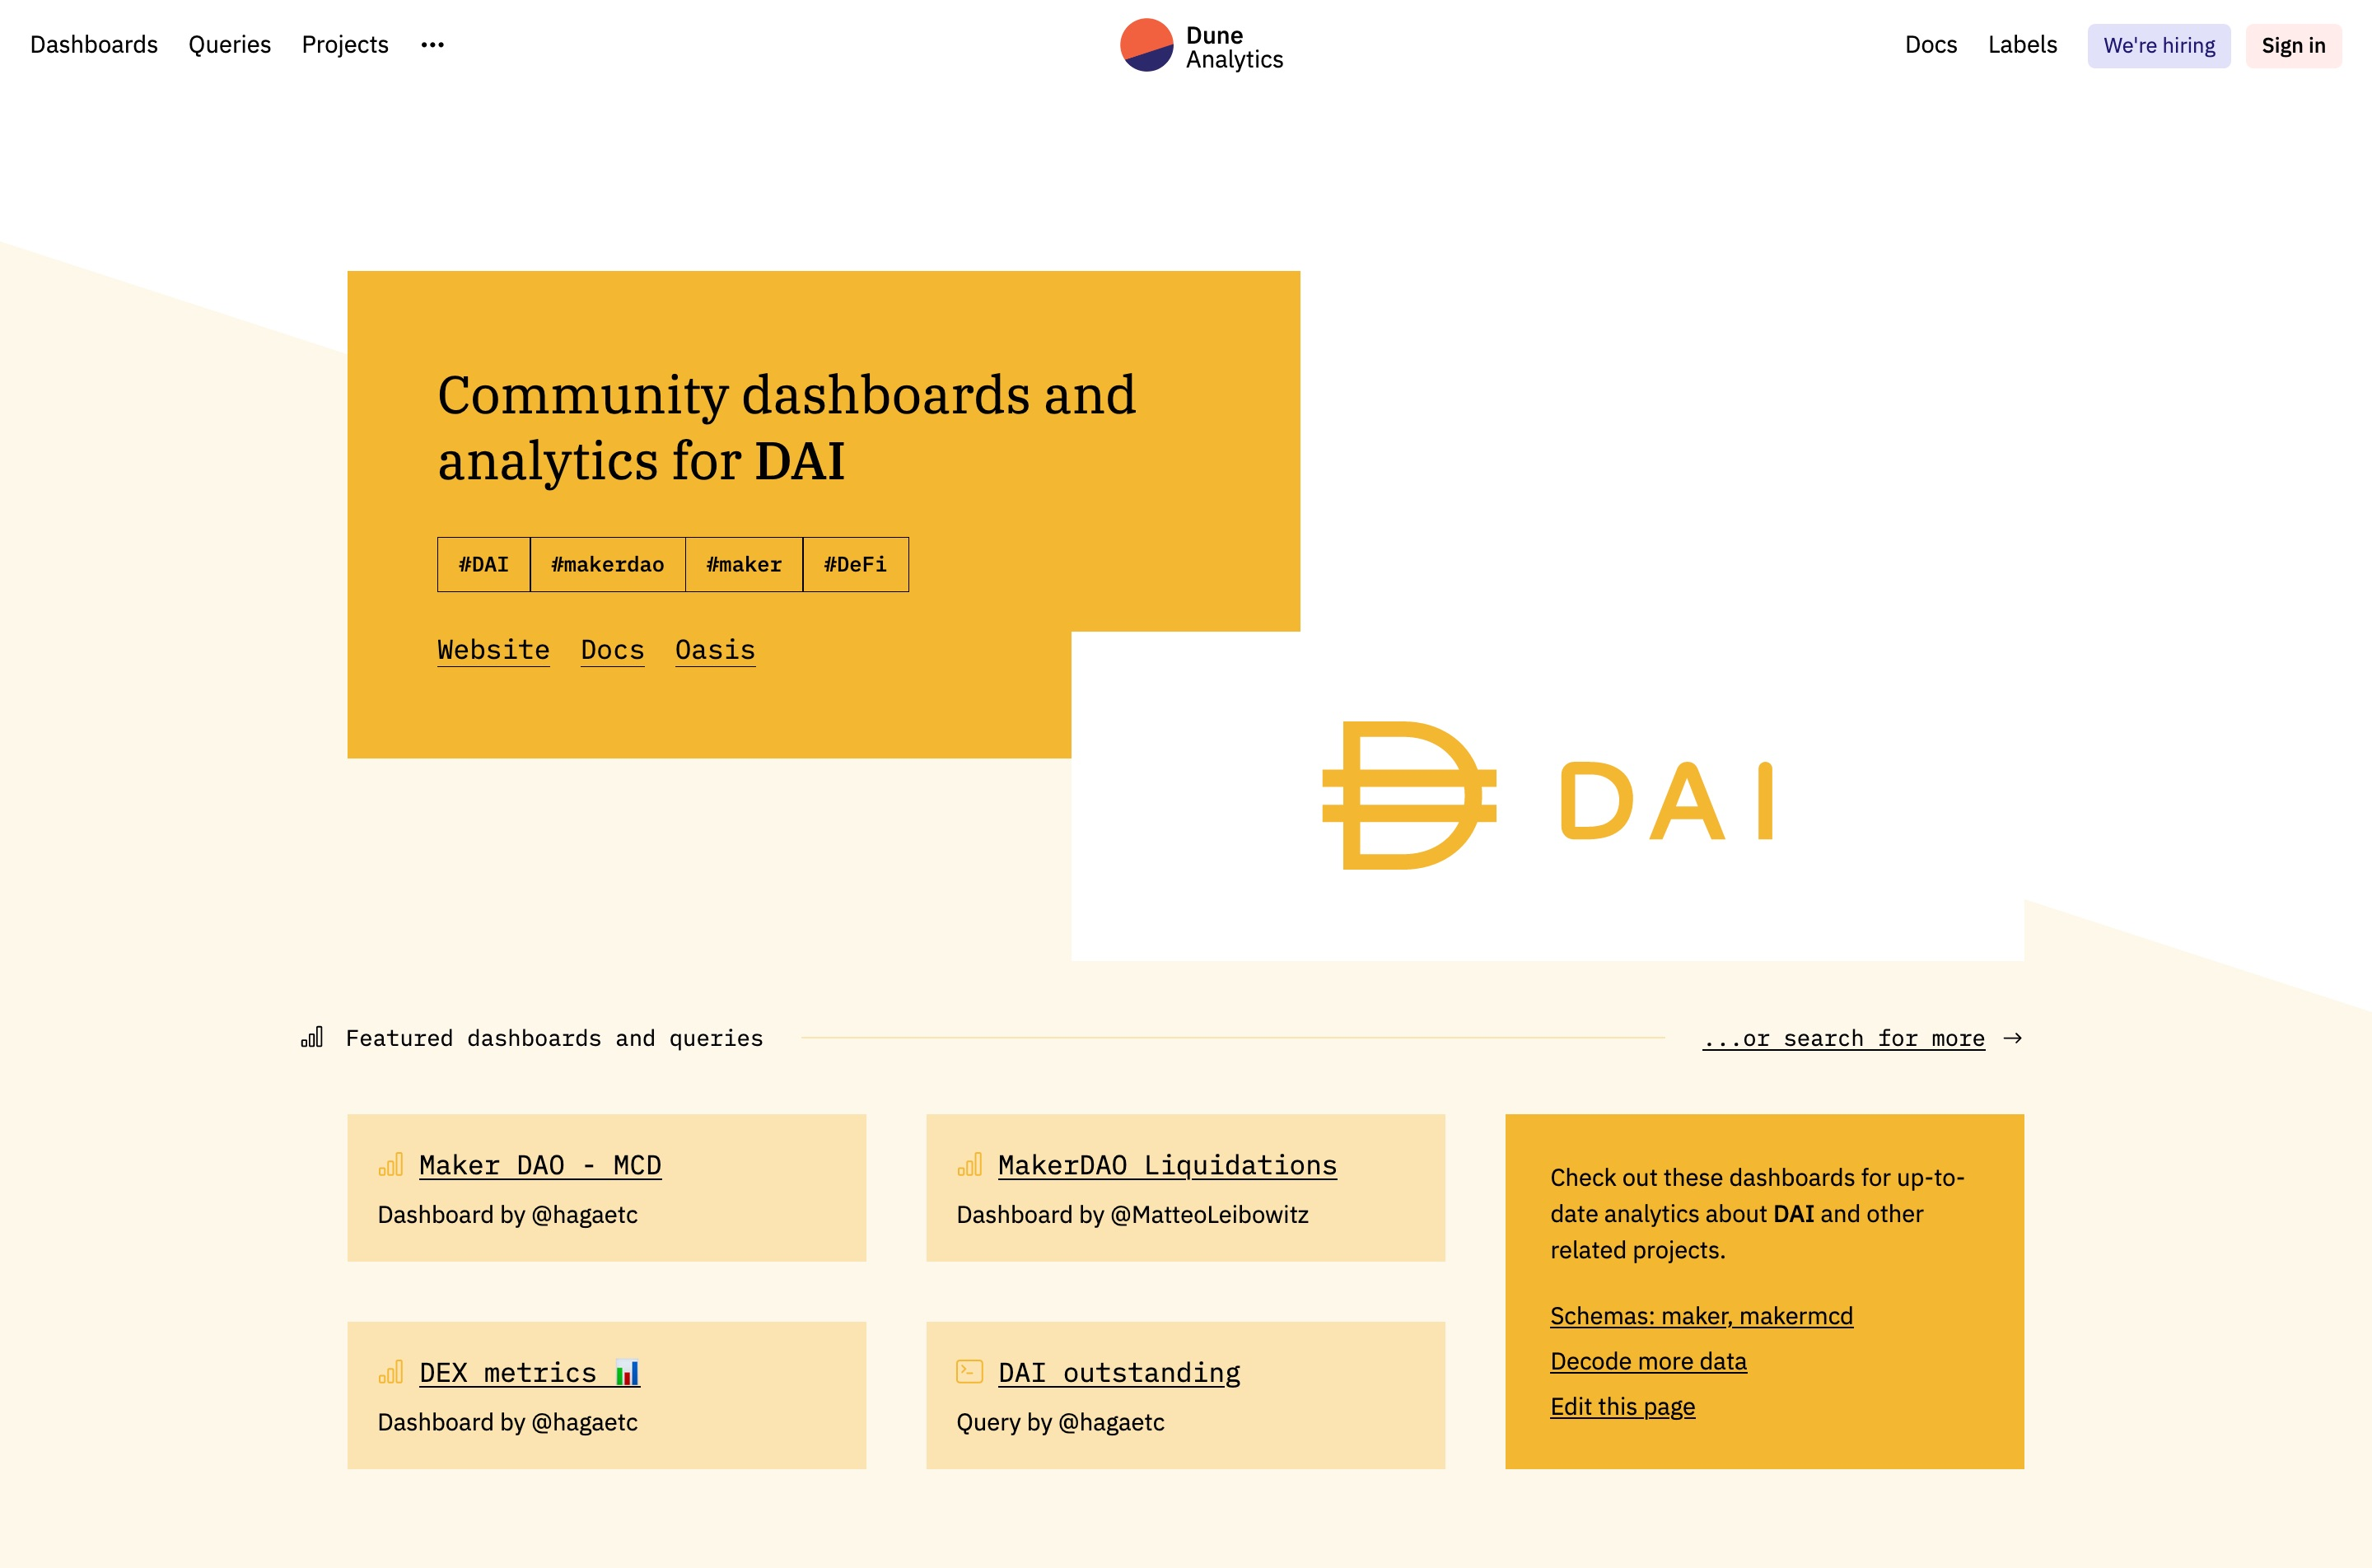 Branded project page for DAI with links to dashboards